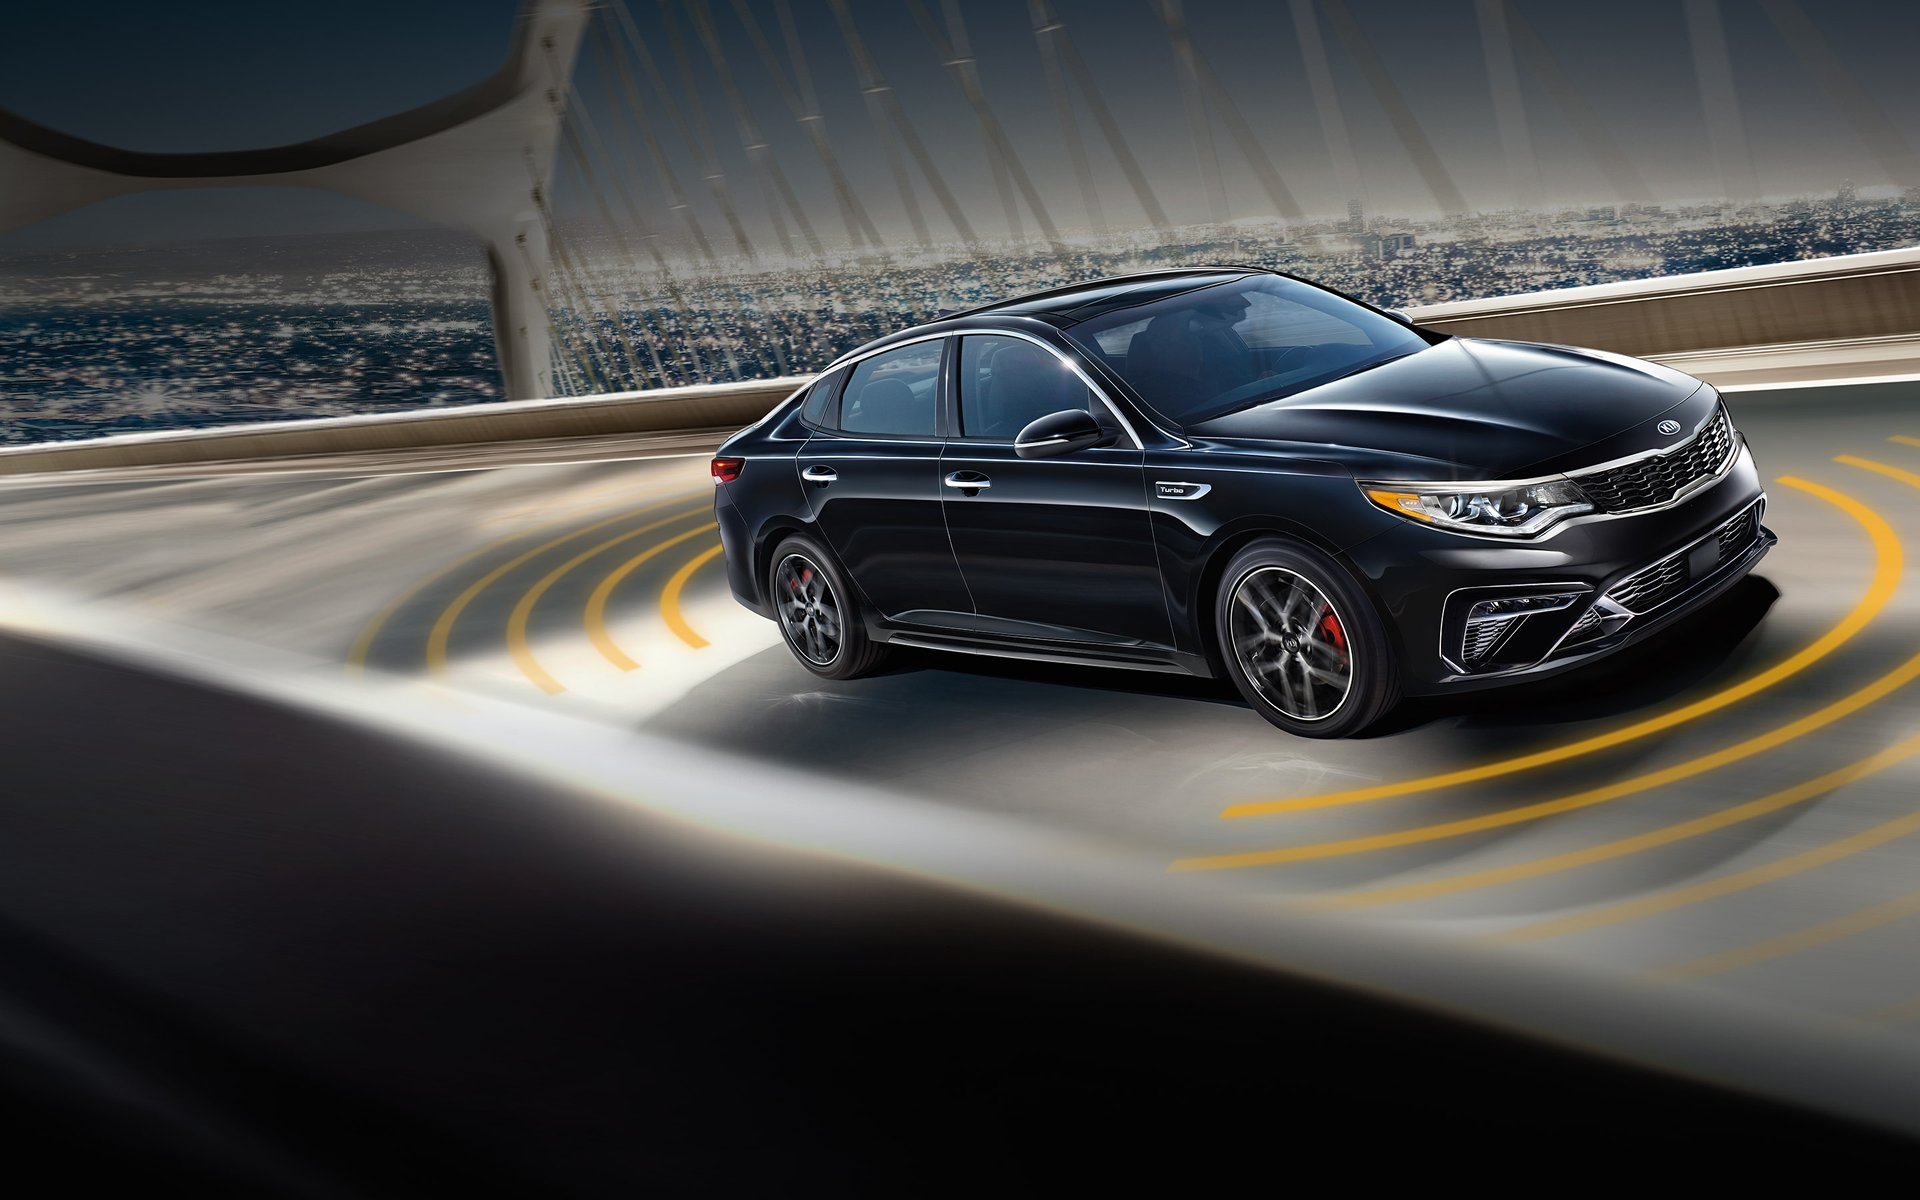 New 2019 Kia Optima We're Here To Help.